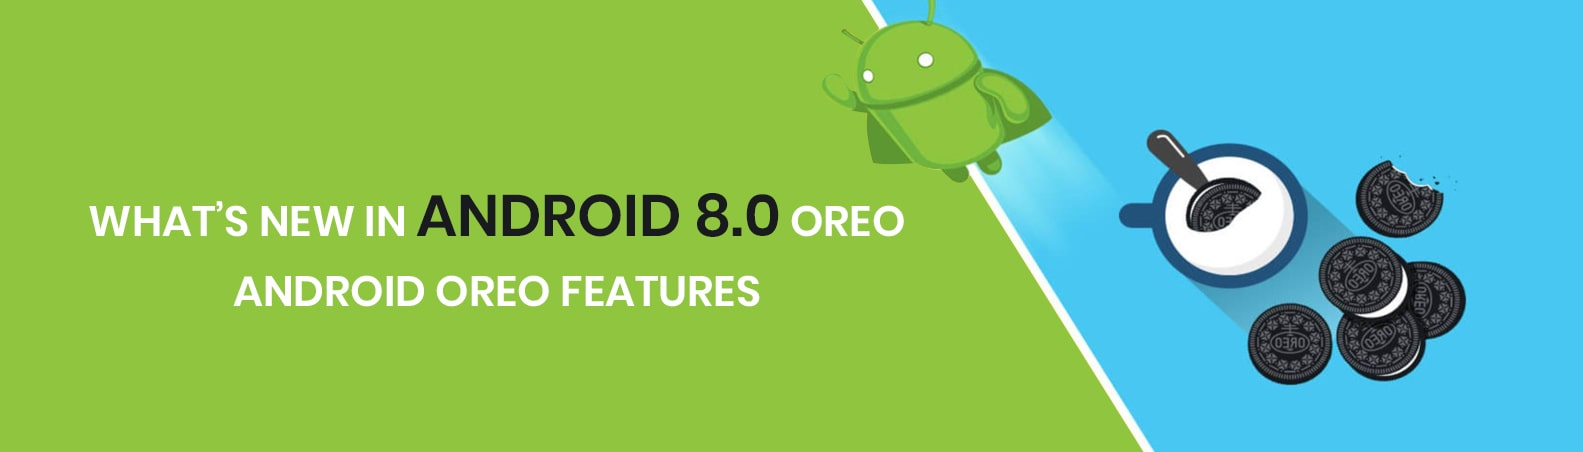 What's New in Android 8.0 Oreo | Android Oreo Features